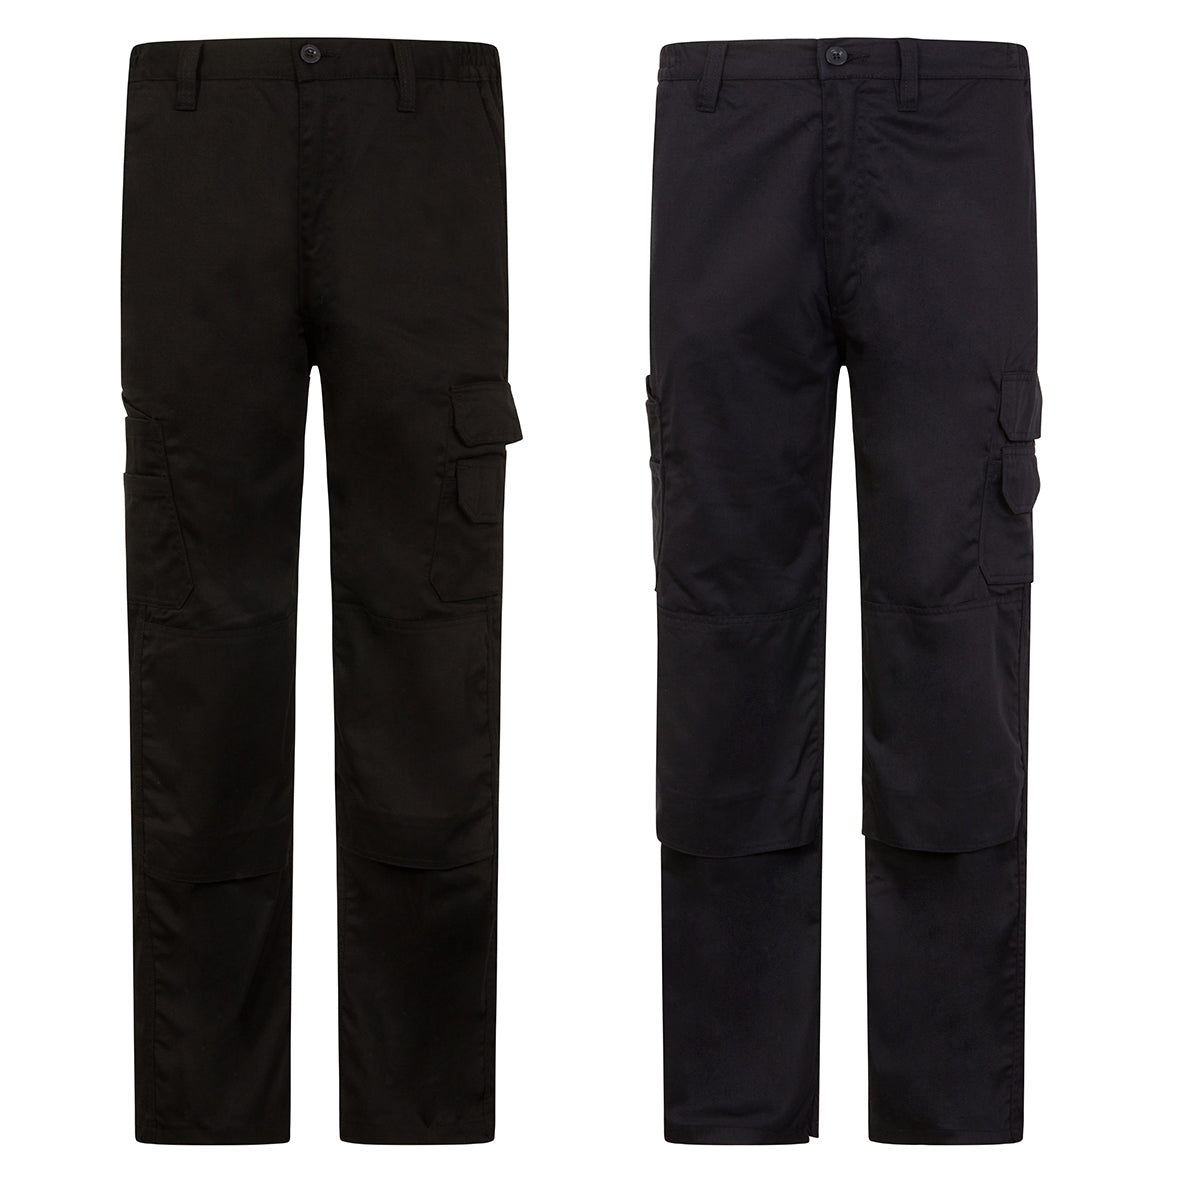 91ccb0b225 Goldstar Mens Cargo Combat Work Trousers with Knee Pad Pockets - GS ...